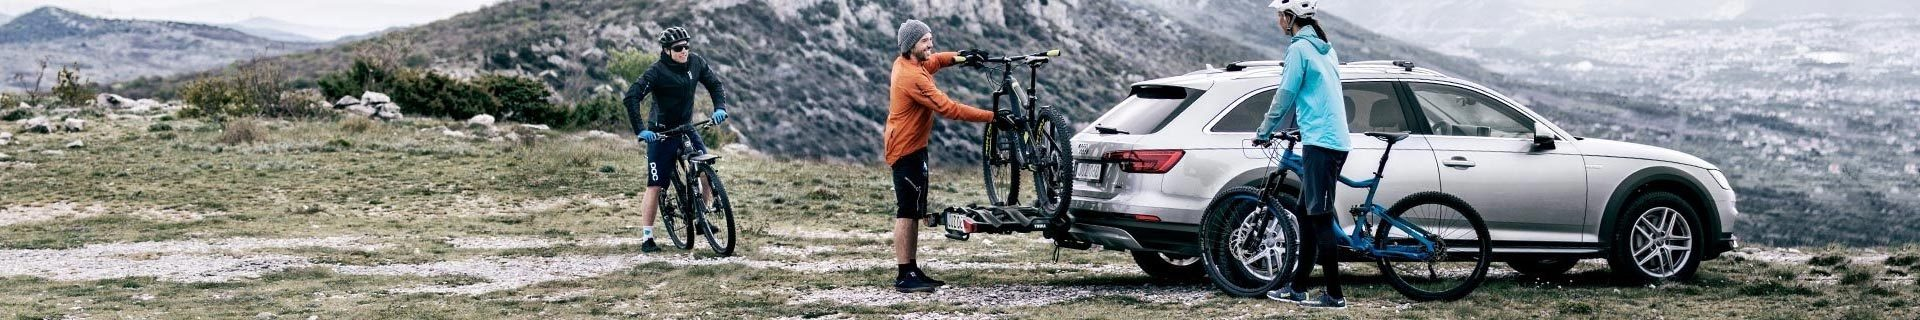 thule bike rack platform with bikes being loaded in alpine area